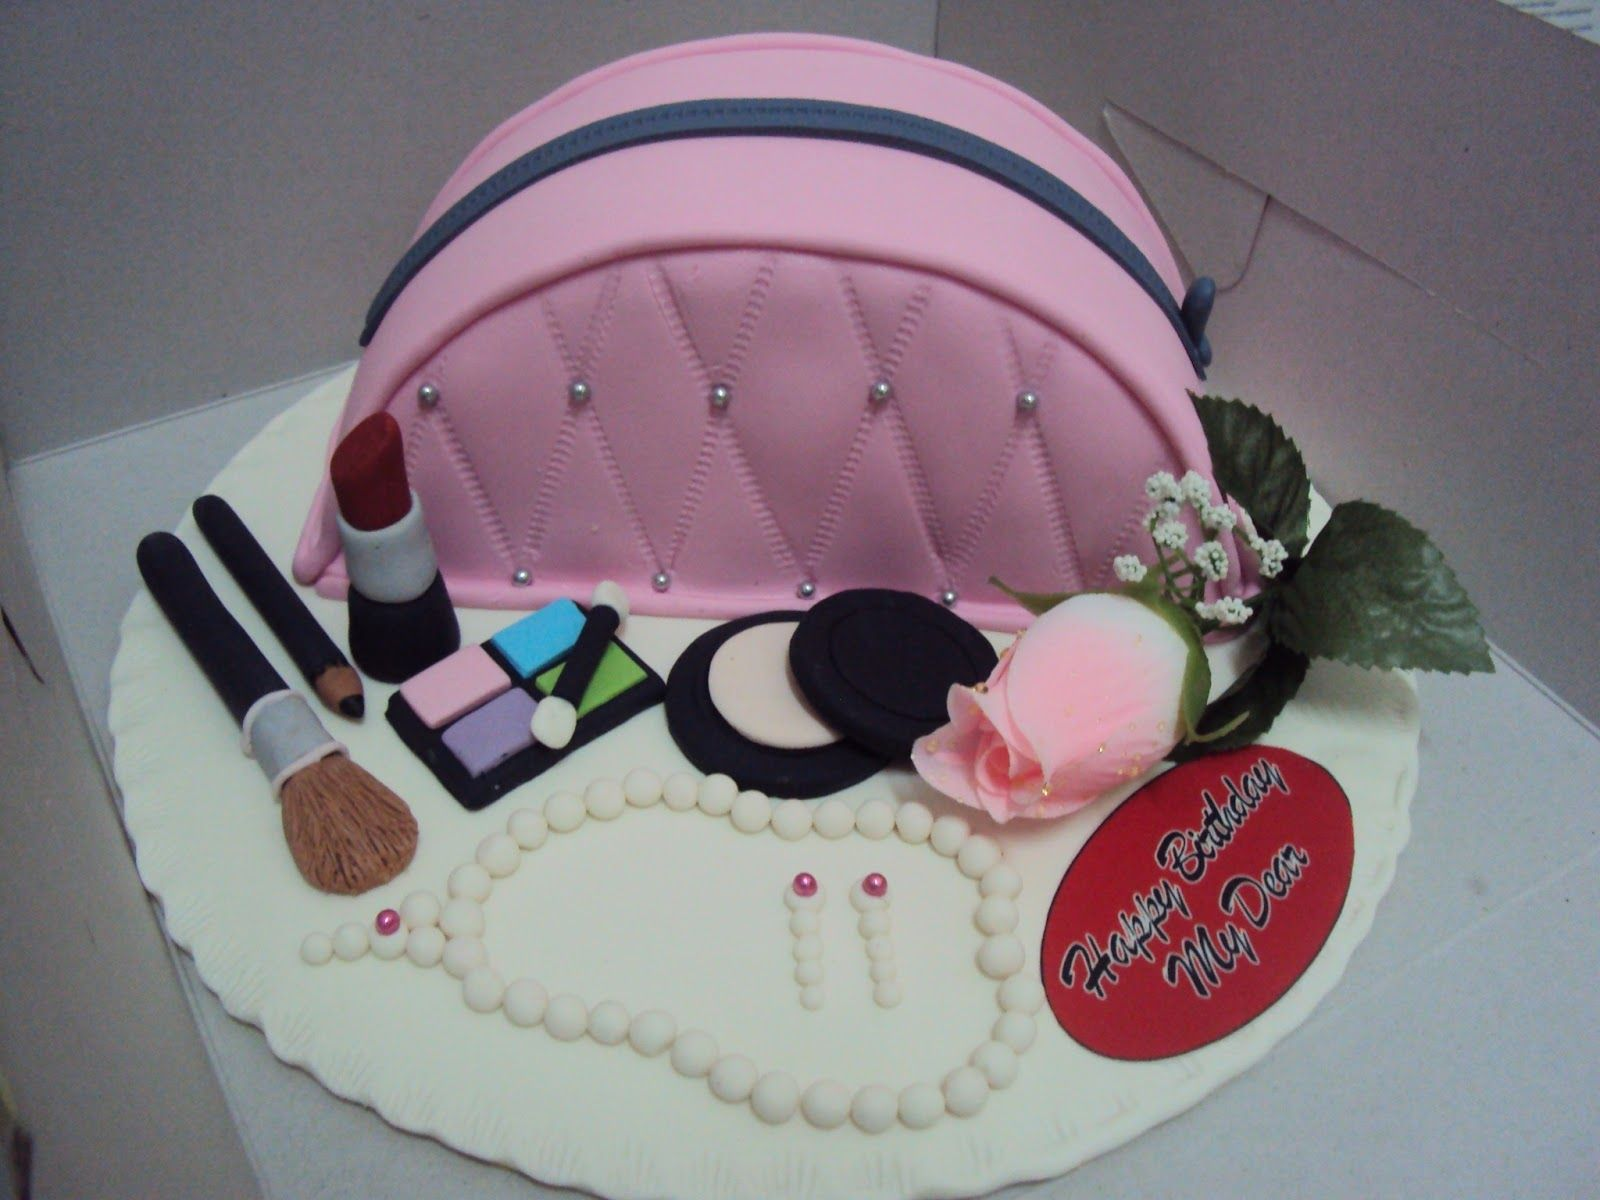 L'mis Homemade Cakes Ipoh Tel : 012-5991233 : Cosmetic Set 3D ...